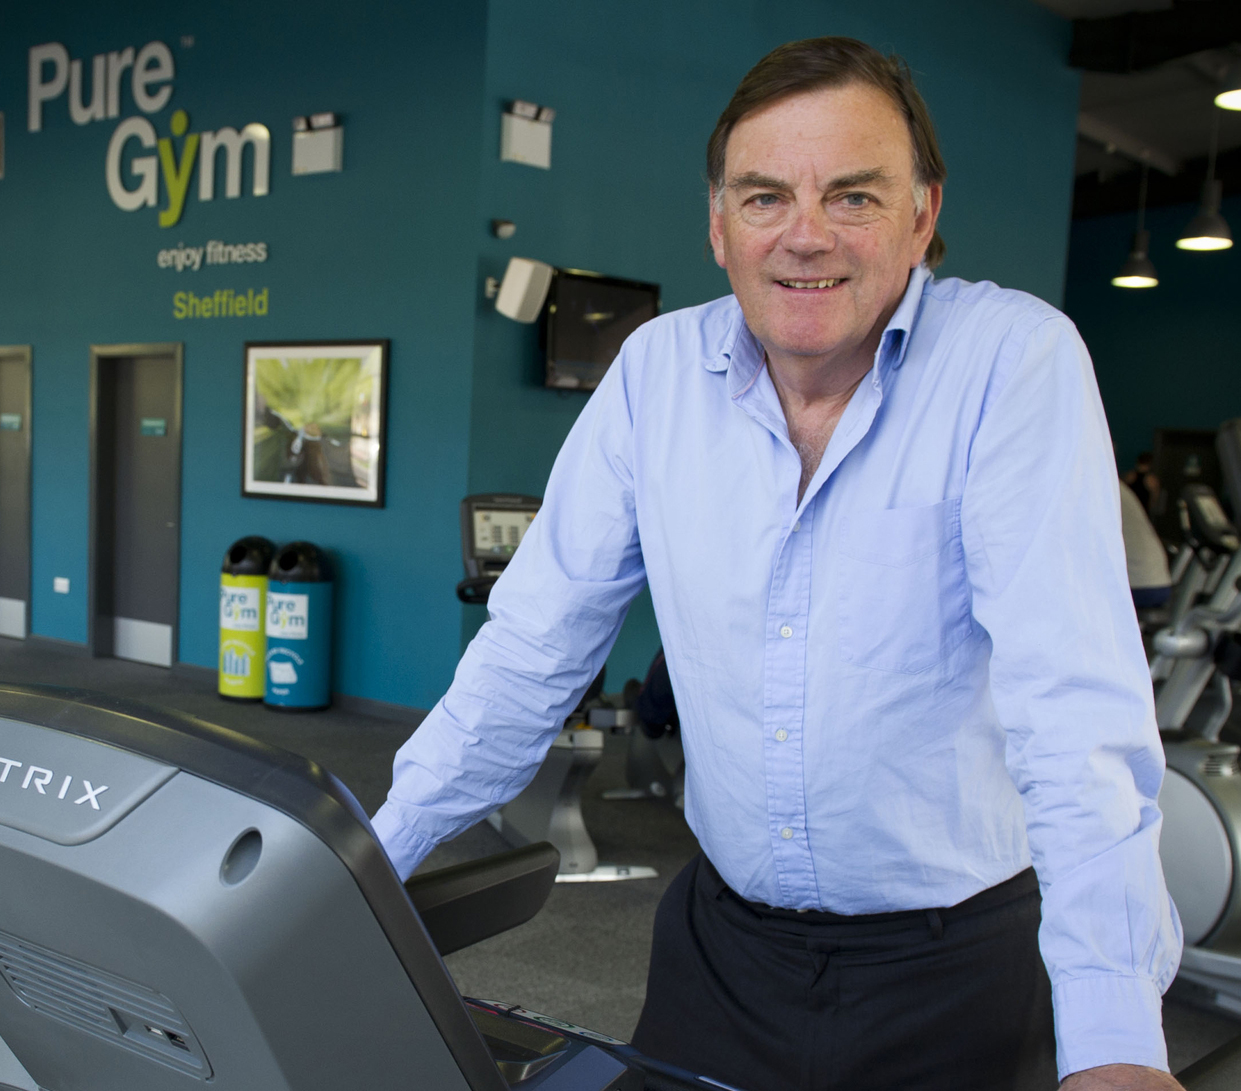 Pure Gym founder and CEO Peter Roberts is undeterred by the setback